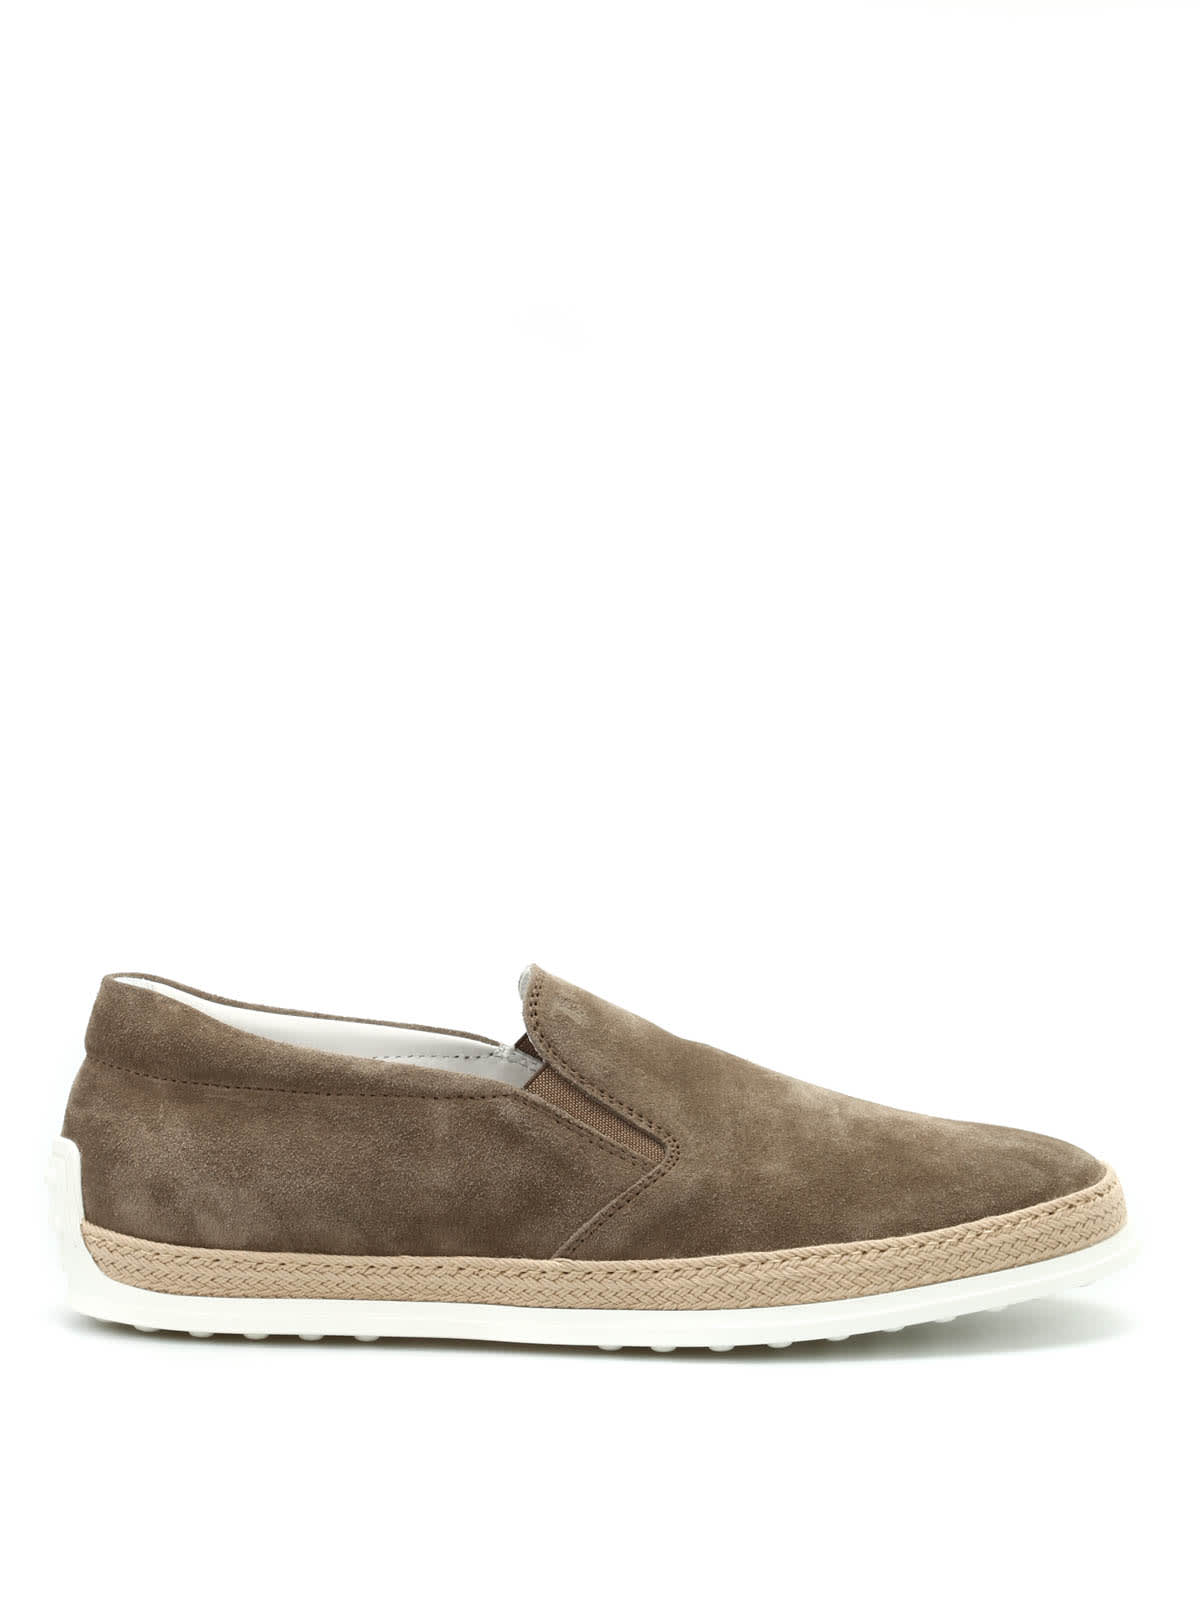 Tods Loafers